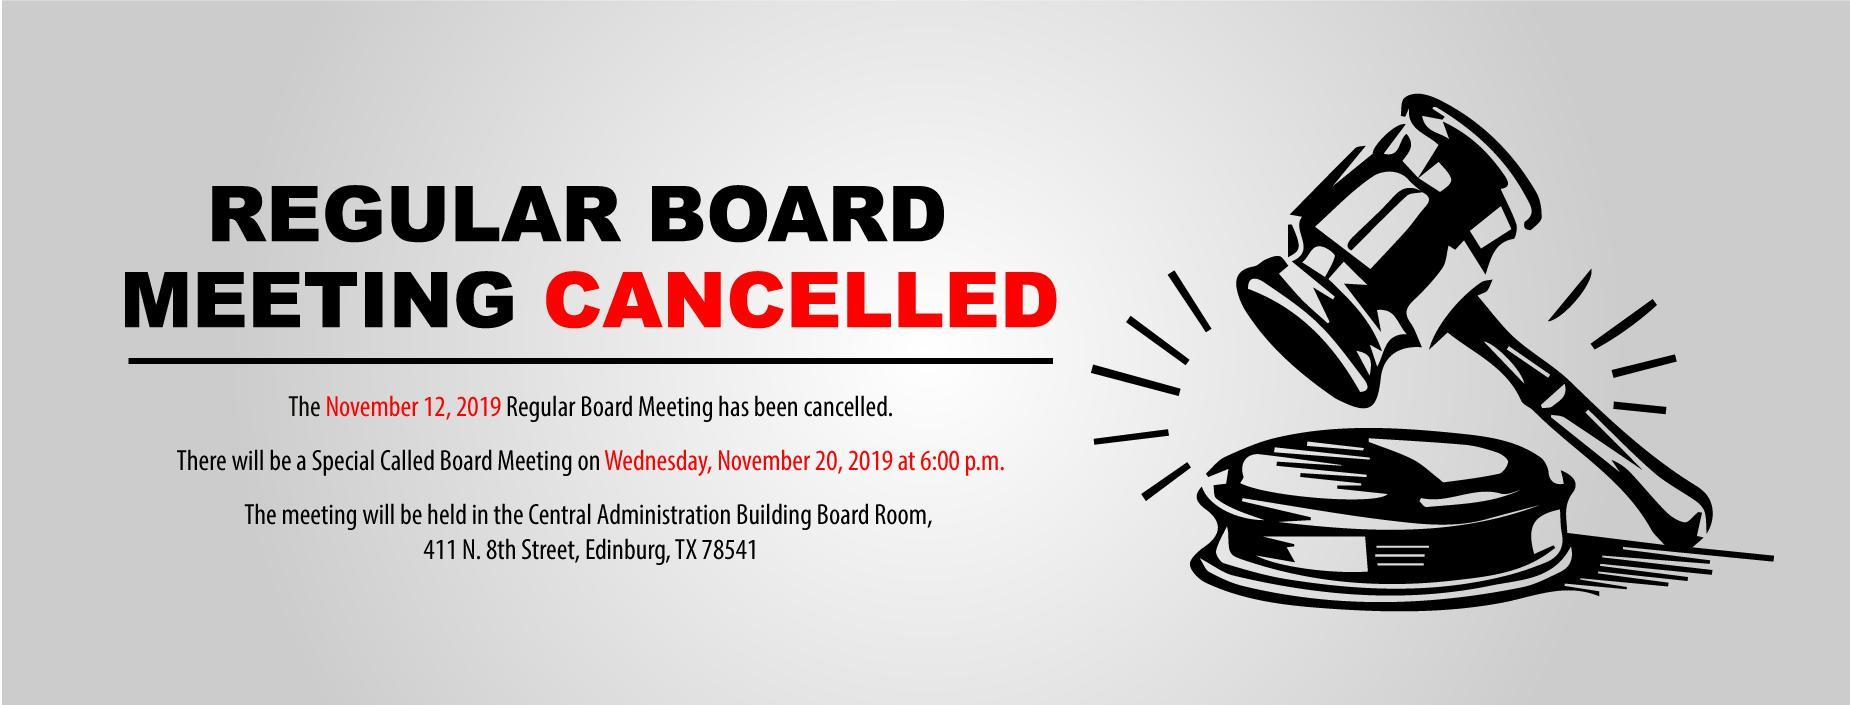 November 12 Board Meeting Cancelled Banner